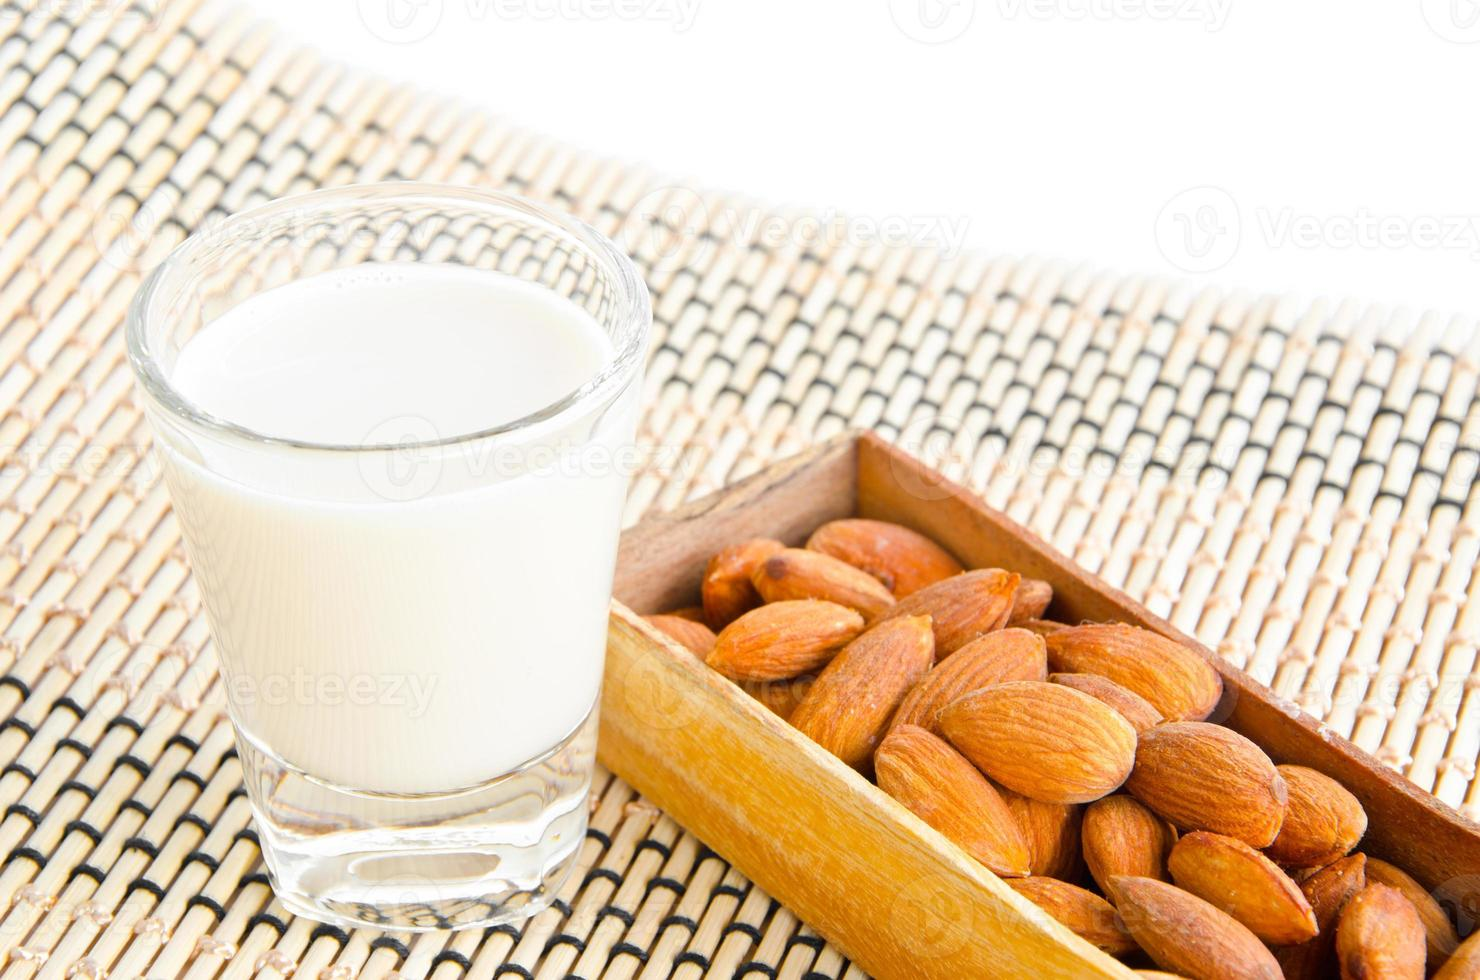 almonds drink with almonds photo